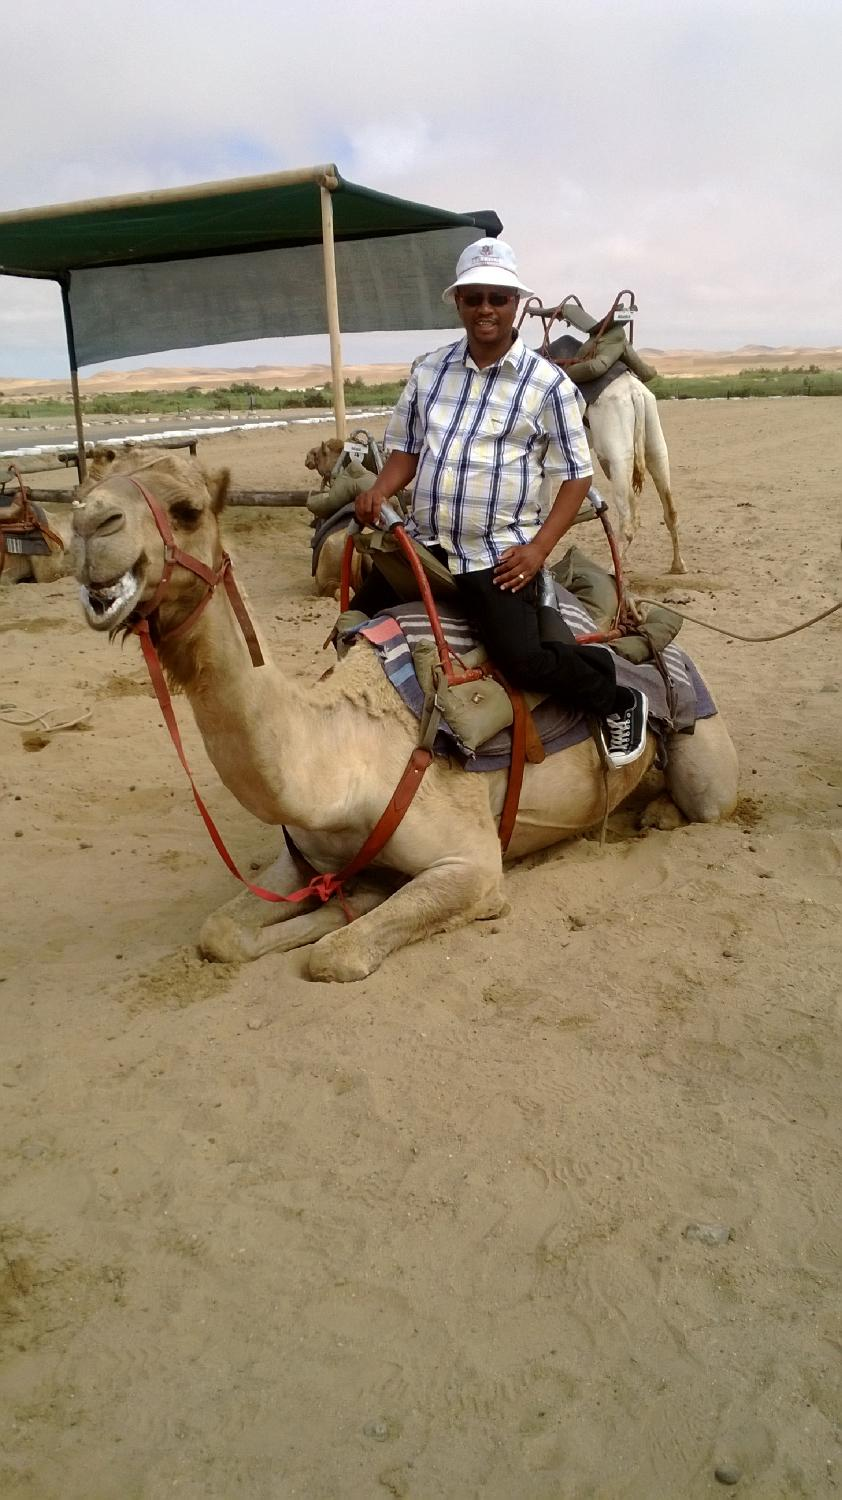 Camel rides also feature in the Namib Desert